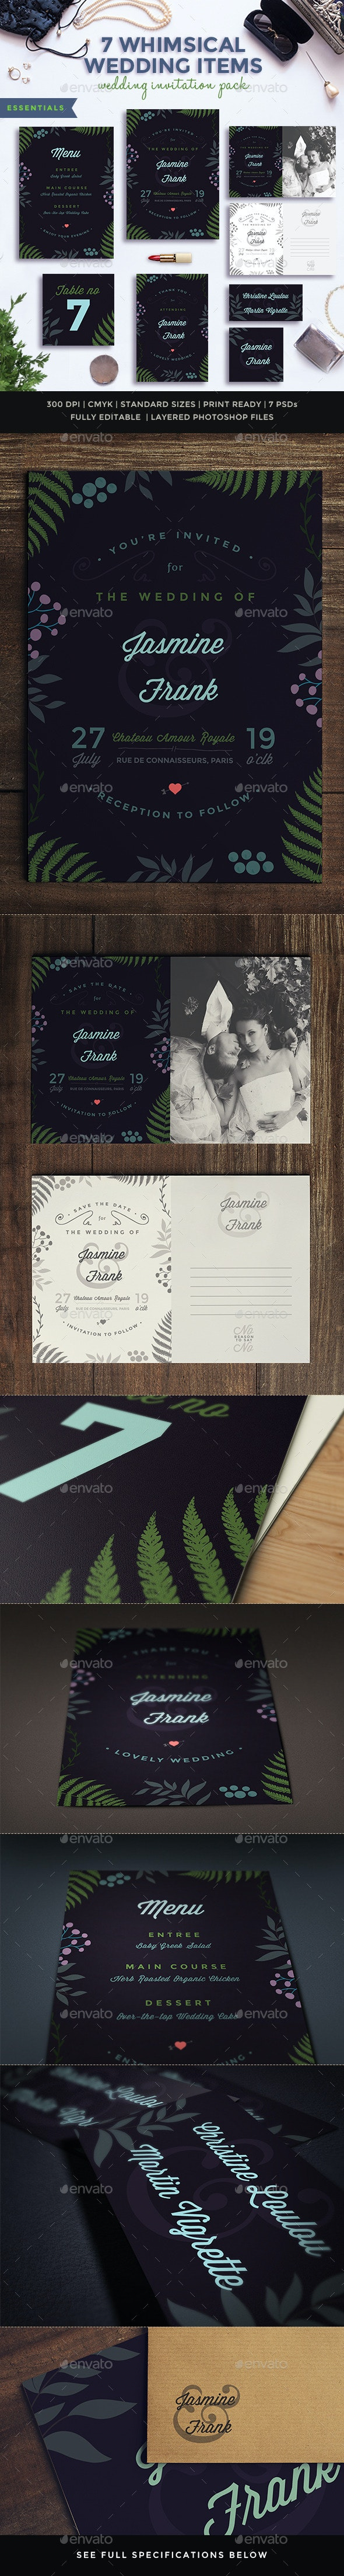 7 Whimsical Wedding Items Pack III - Weddings Cards & Invites